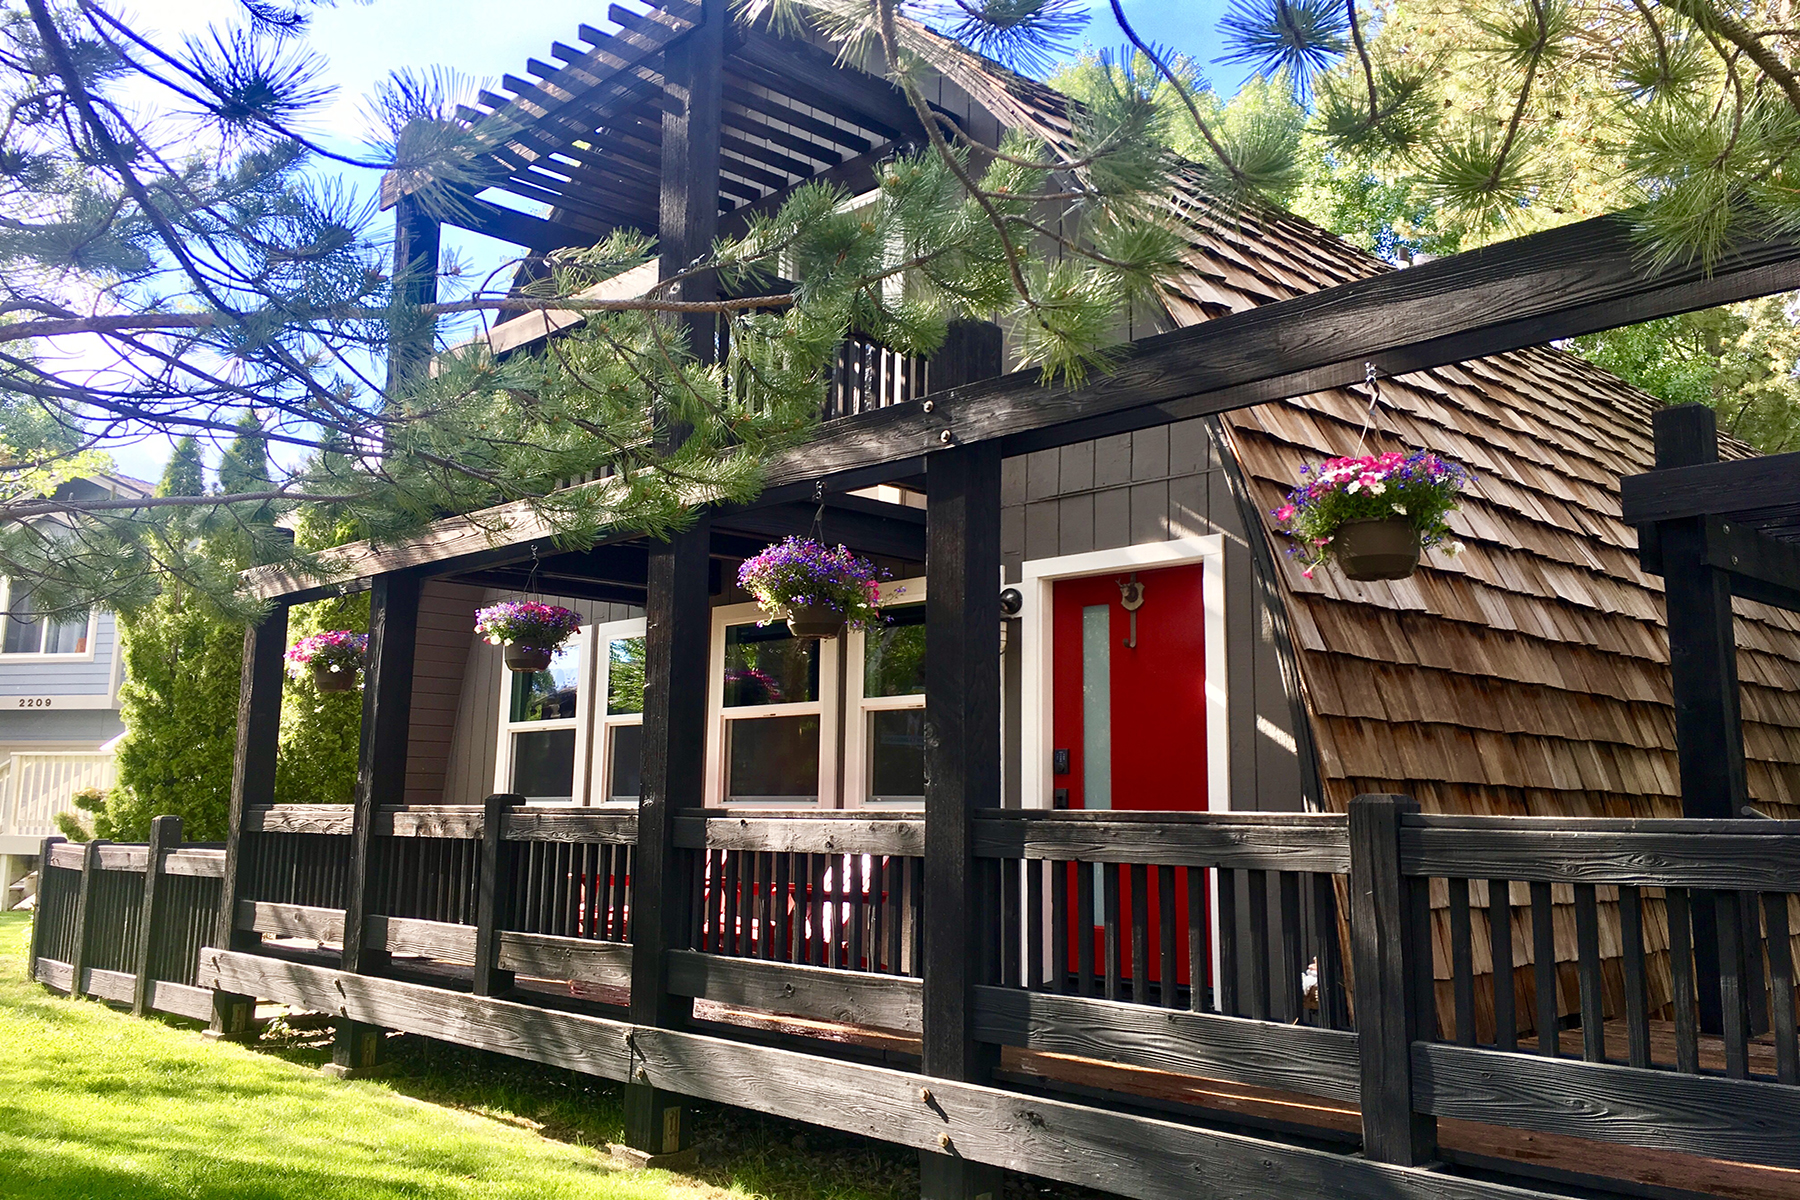 Single Family Home for Active at 728 Tuolumne Drive, South Lake Tahoe, CA 96150 728 Tuolumne South Lake Tahoe, California 96150 United States